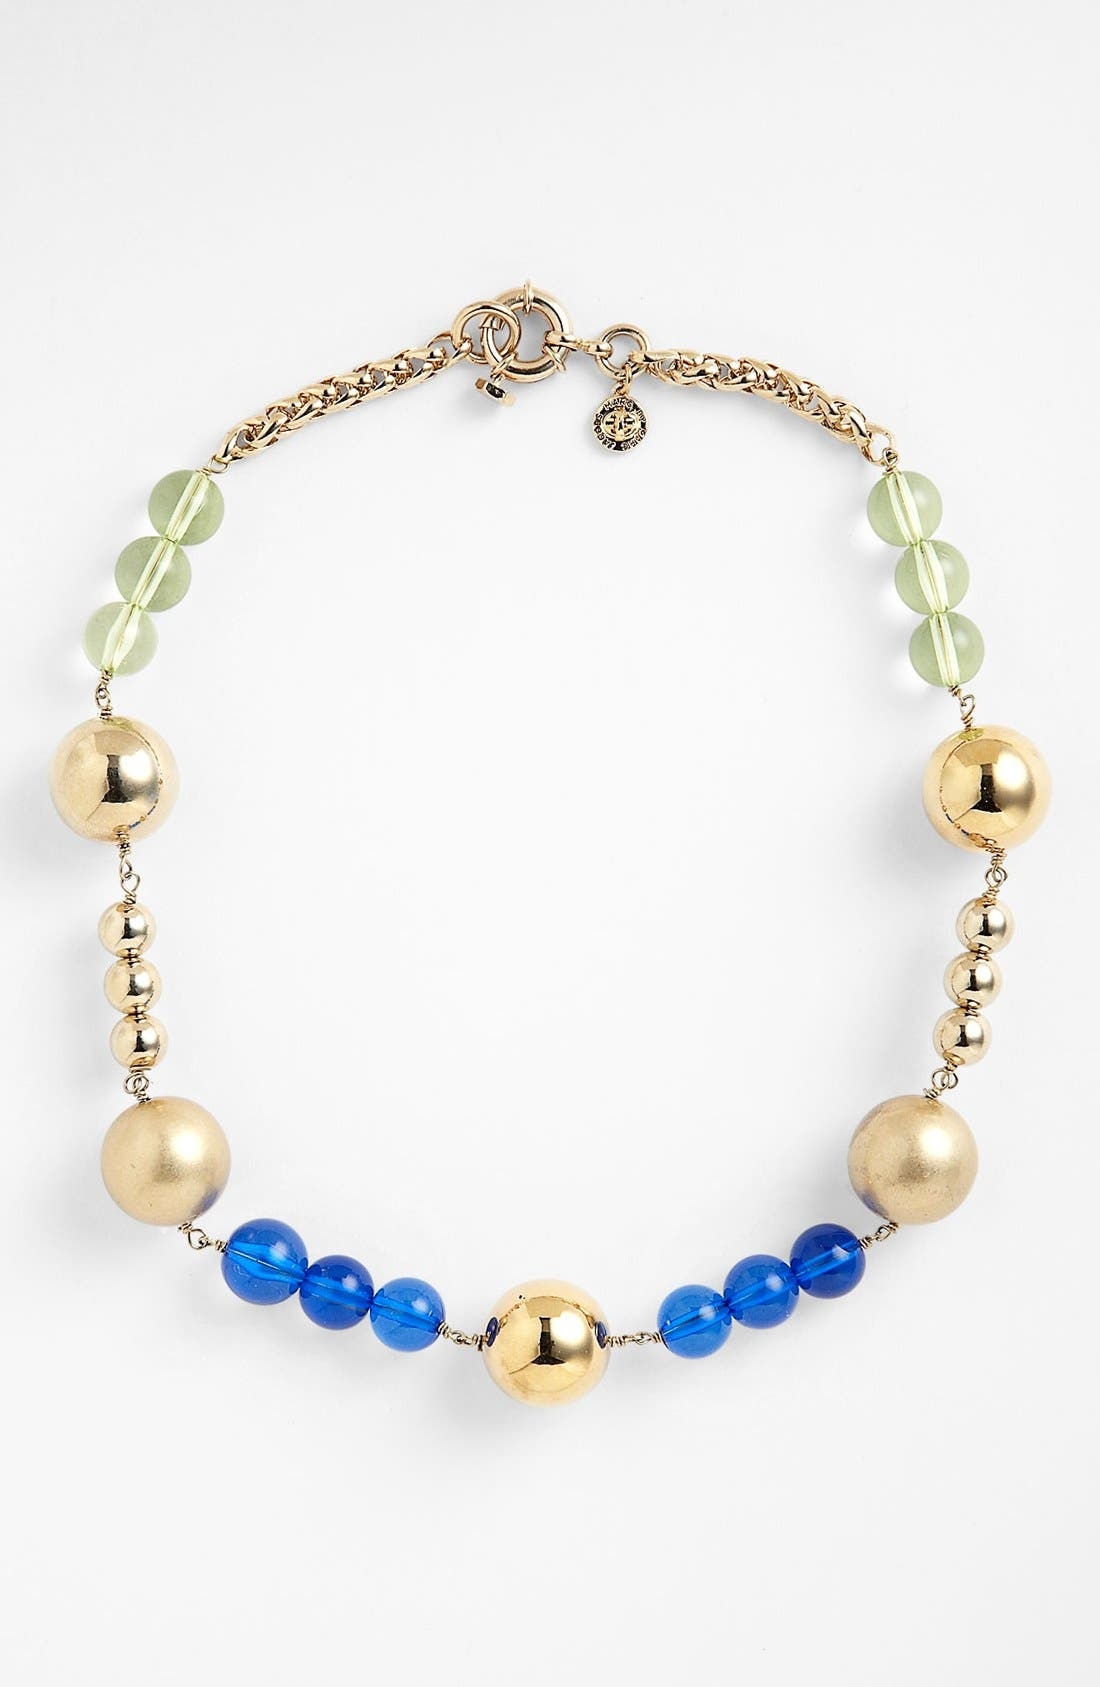 Alternate Image 1 Selected - MARC BY MARC JACOBS 'Ball & Chains' Beaded Necklace